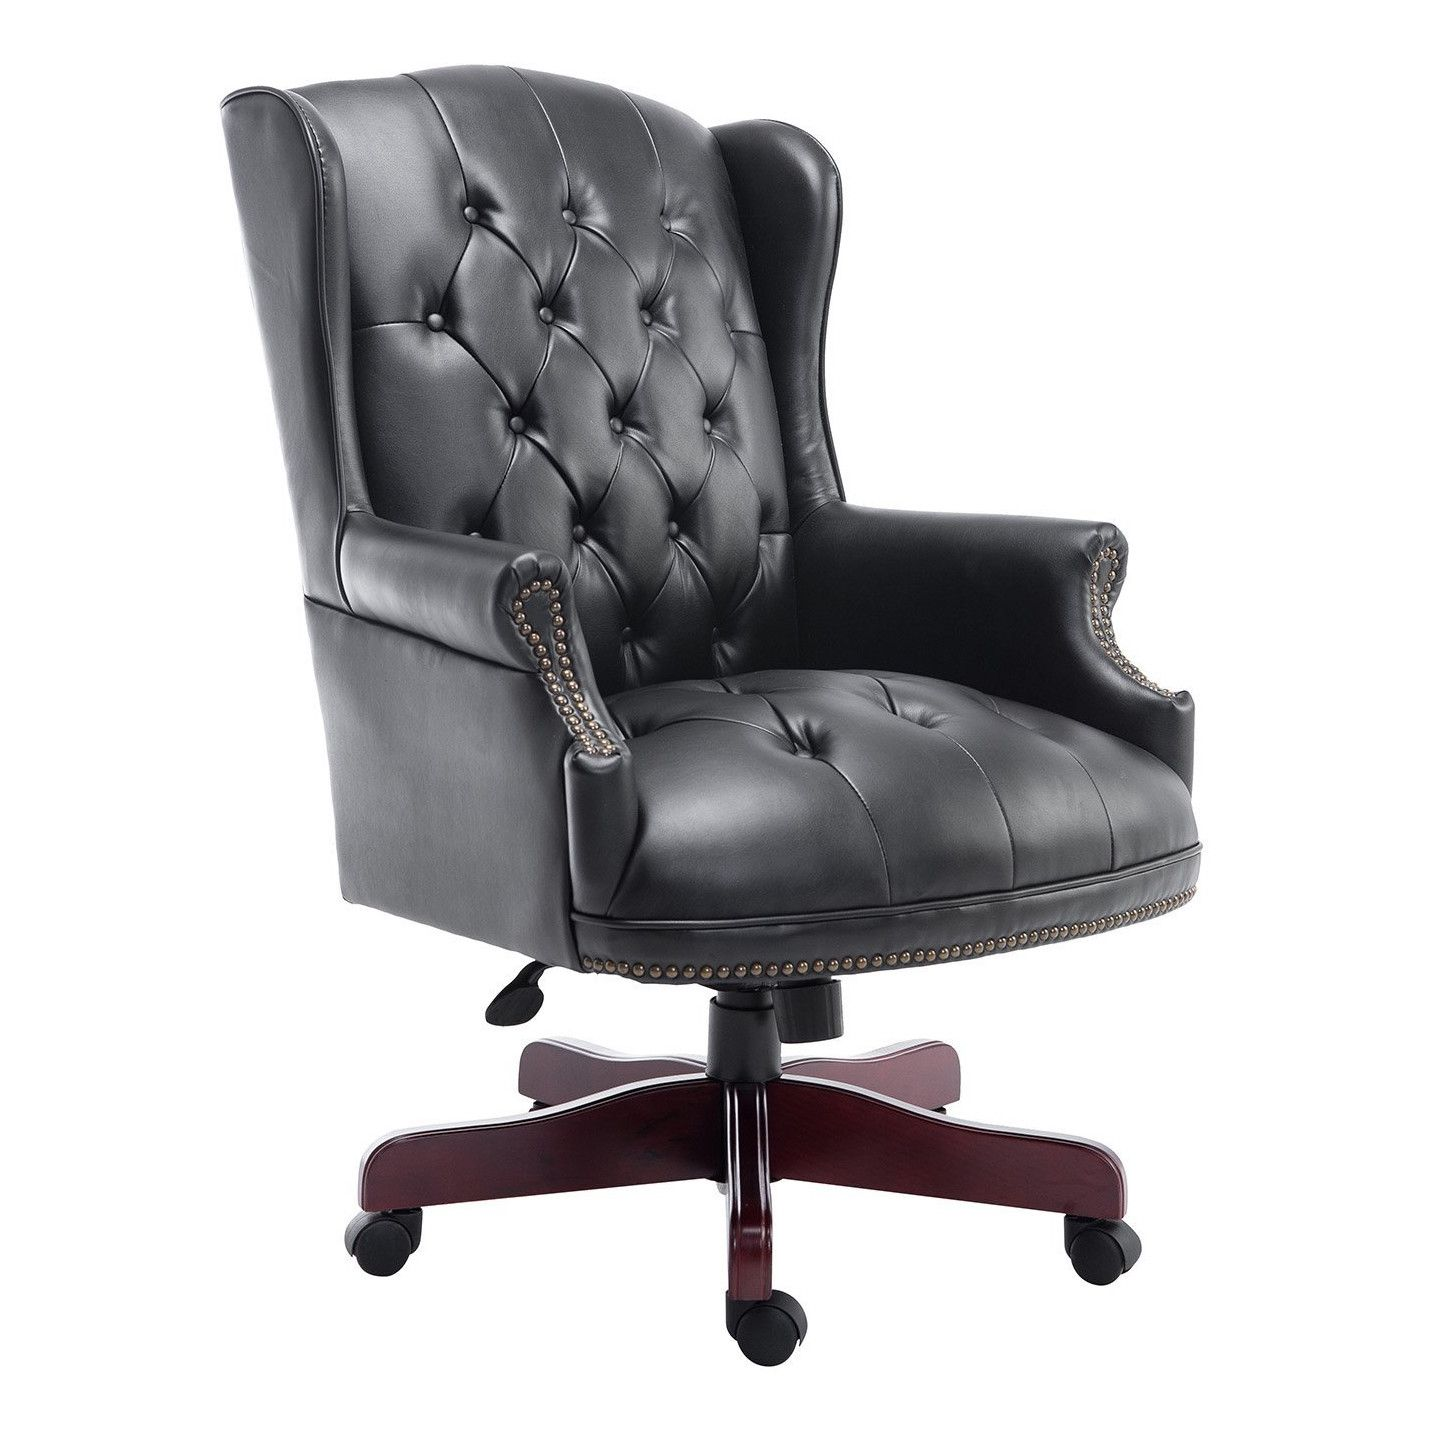 Carlin executive chair office chairs for sale modern